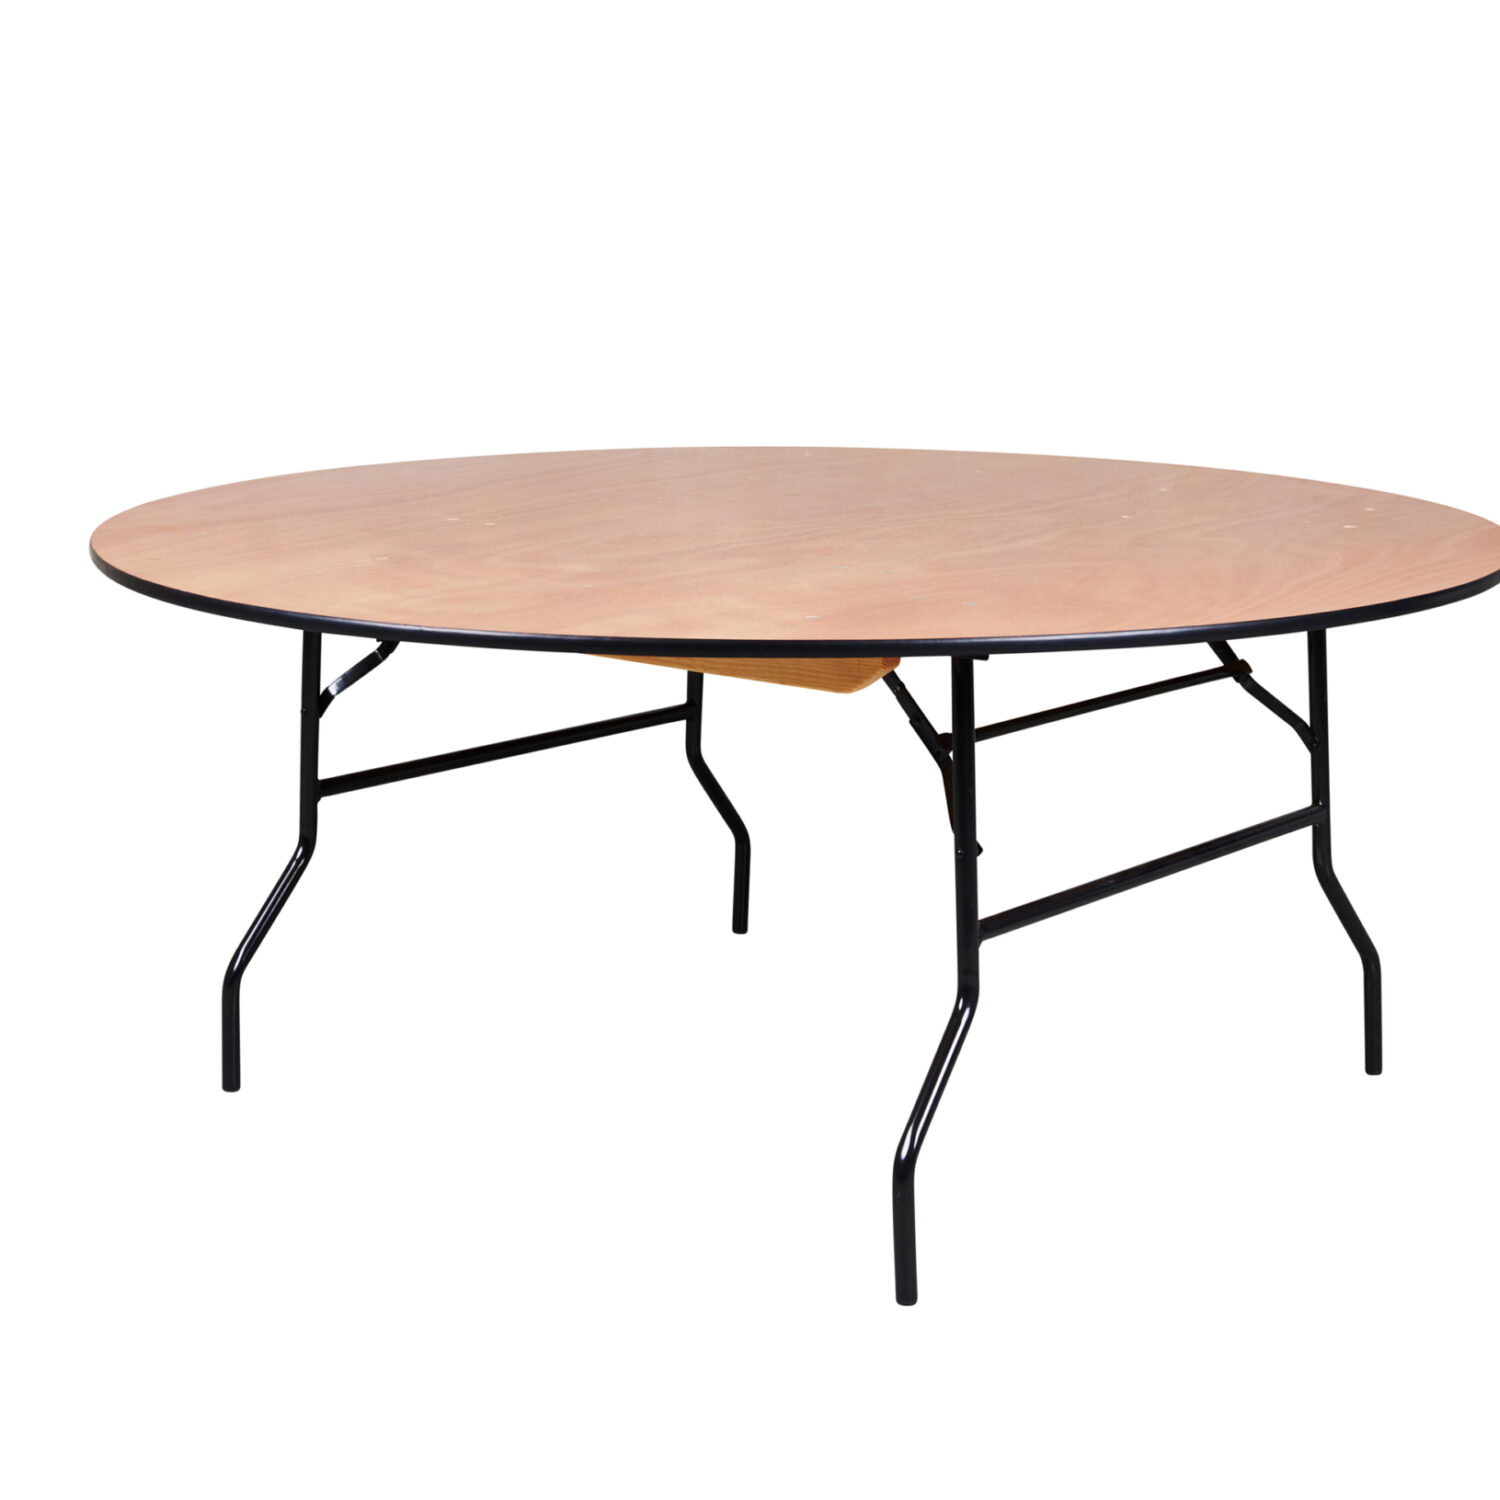 Round Trestle Table - 1.8m - Event Artillery